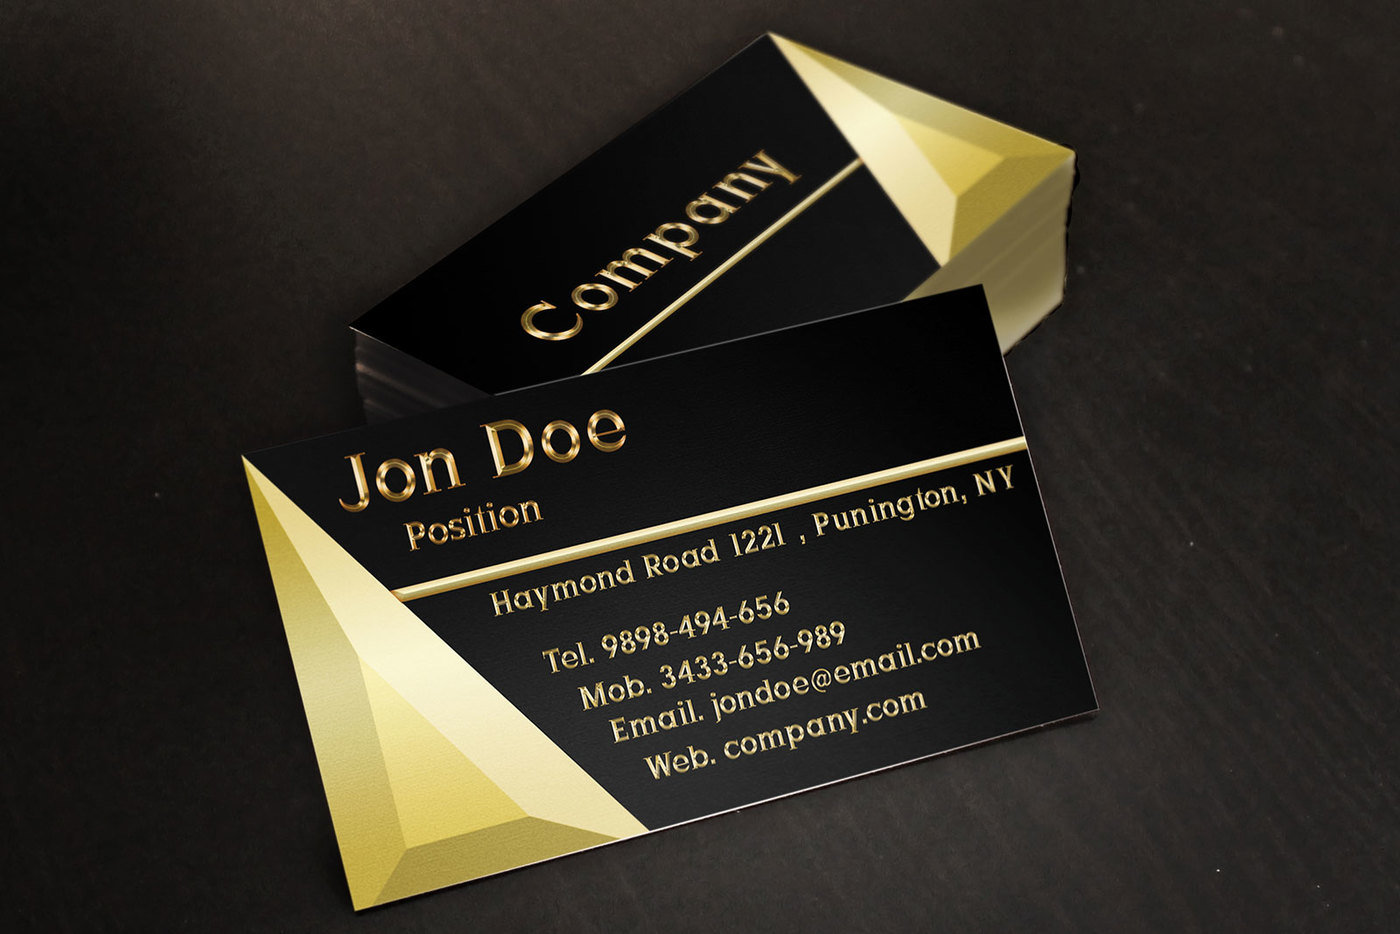 Black and gold jewelry store business card template by borce black and gold jewelry store business card template by borce markoski at coroflot friedricerecipe